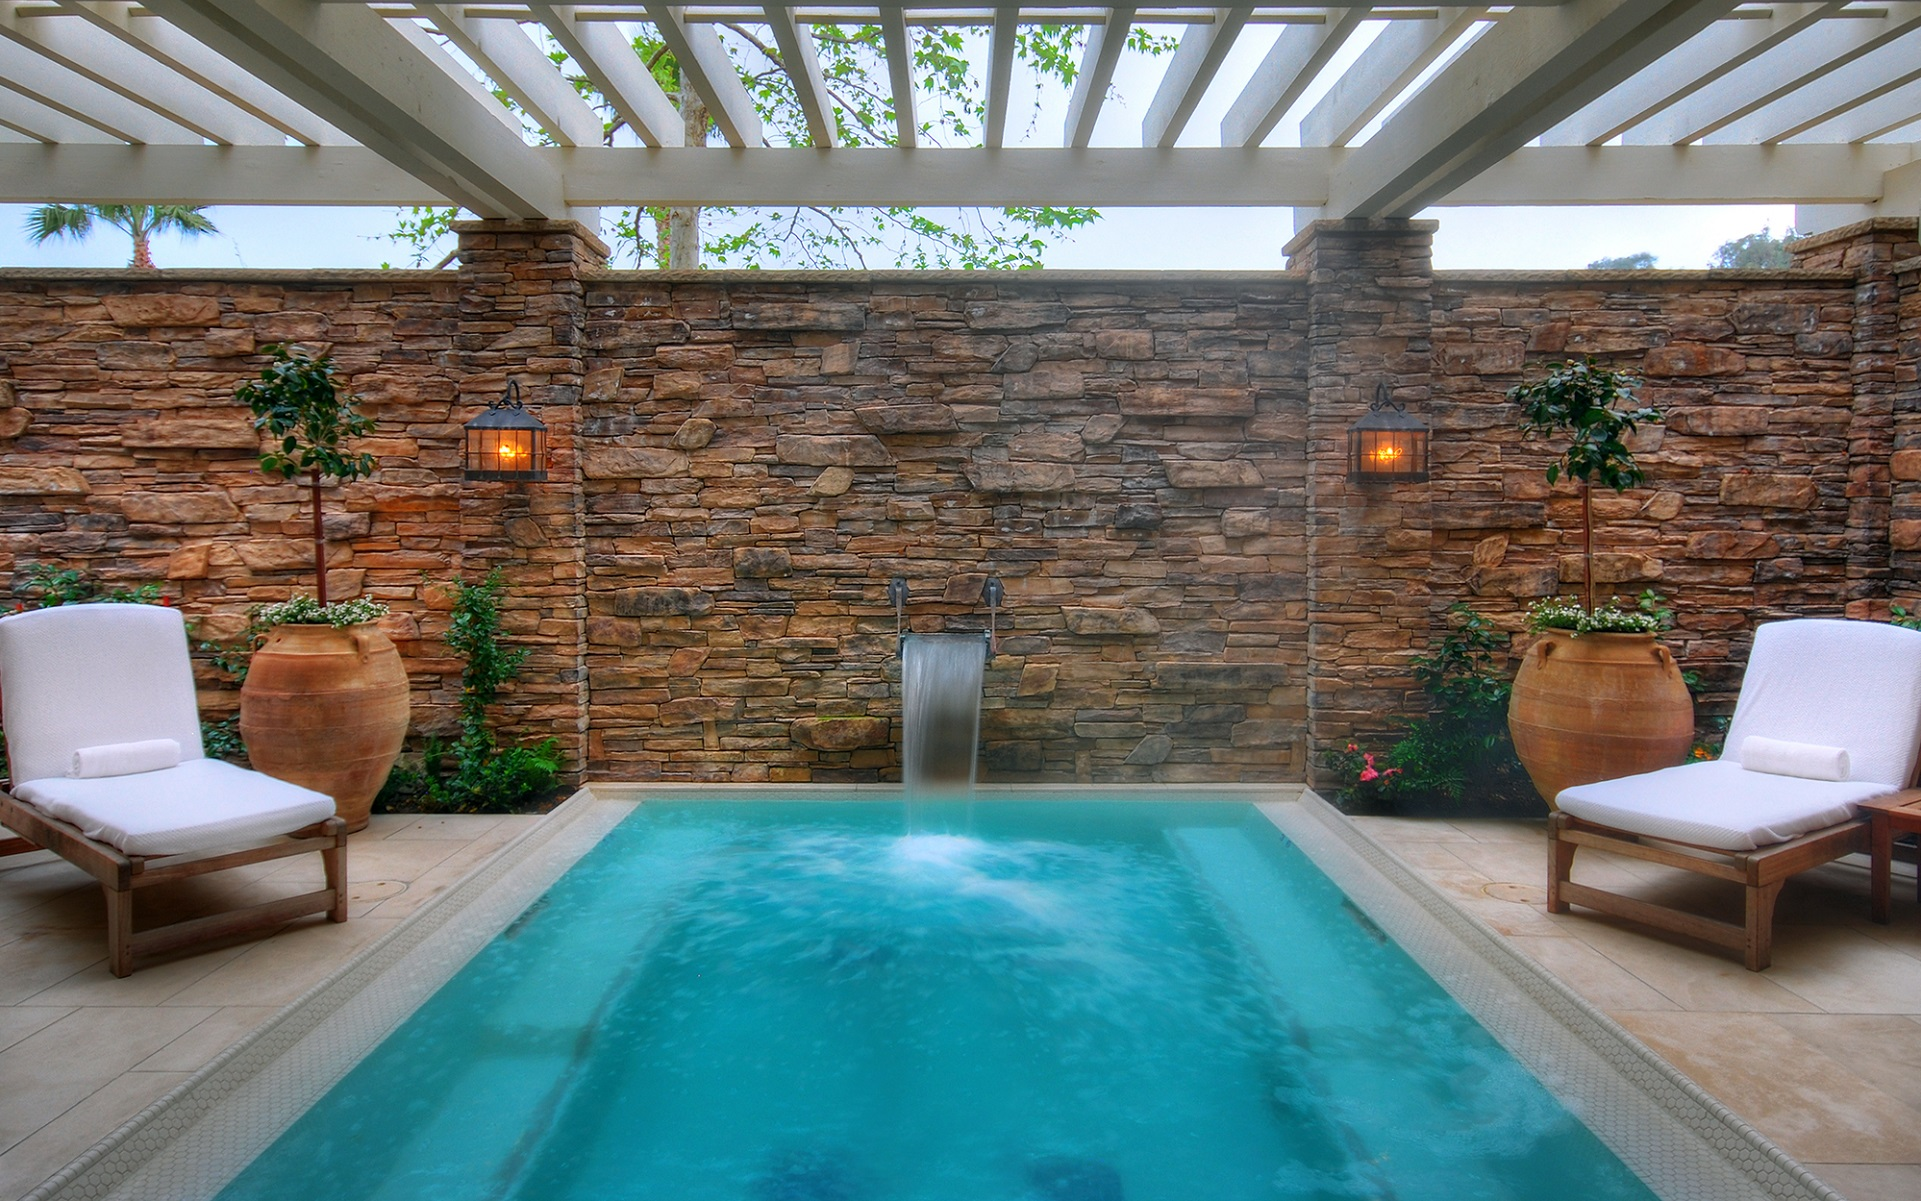 Packages-Promotion-Image-MLB-Architecture-Spa-Pool-Wetroom-Lounge.jpg